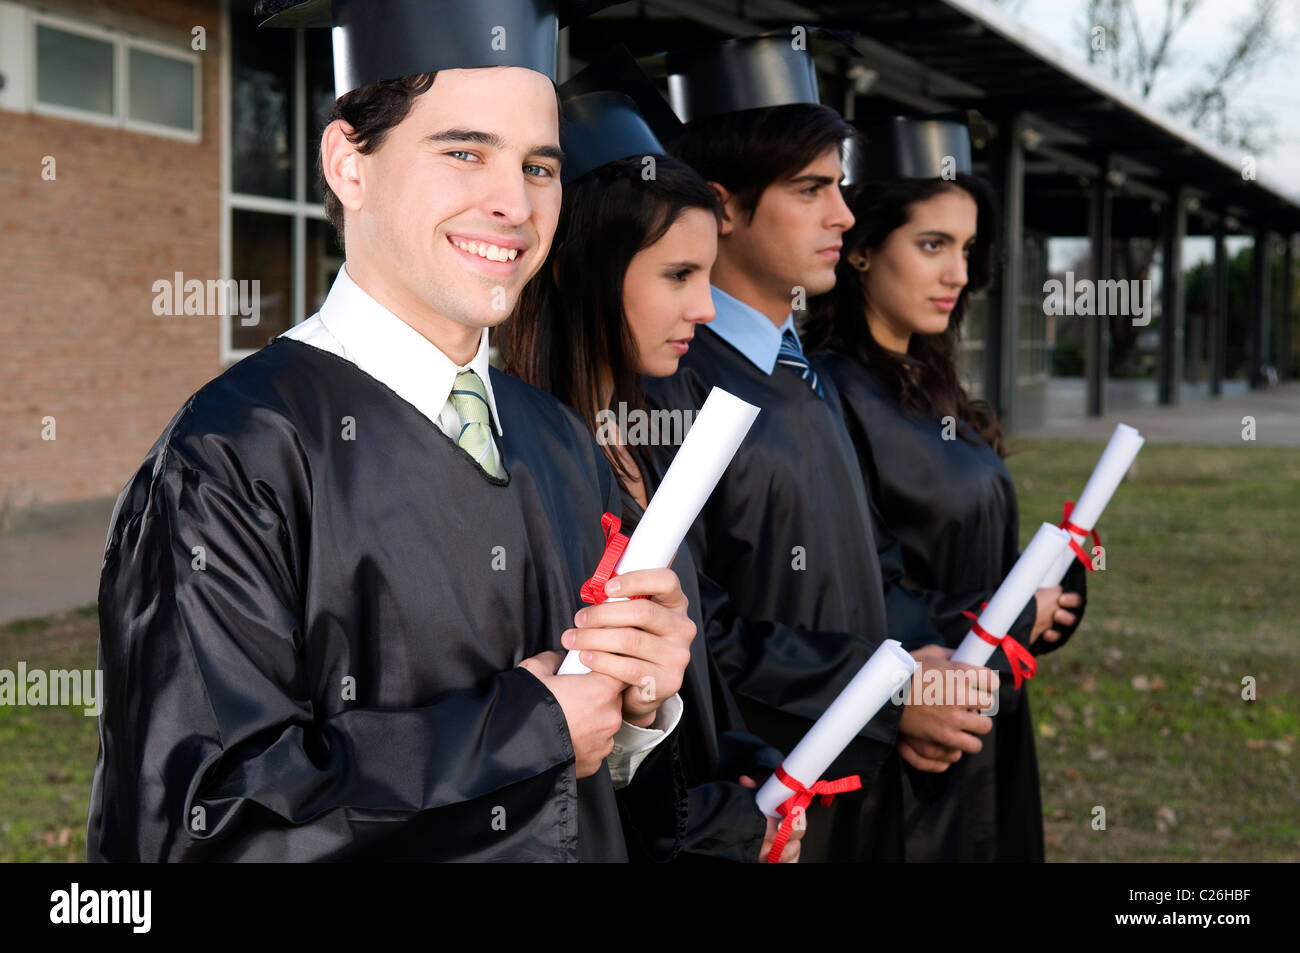 Four, students, schoolmates, smile, smiling, looking, at, the, camera, getting, a, diploma, at, graduation, at, - Stock Image